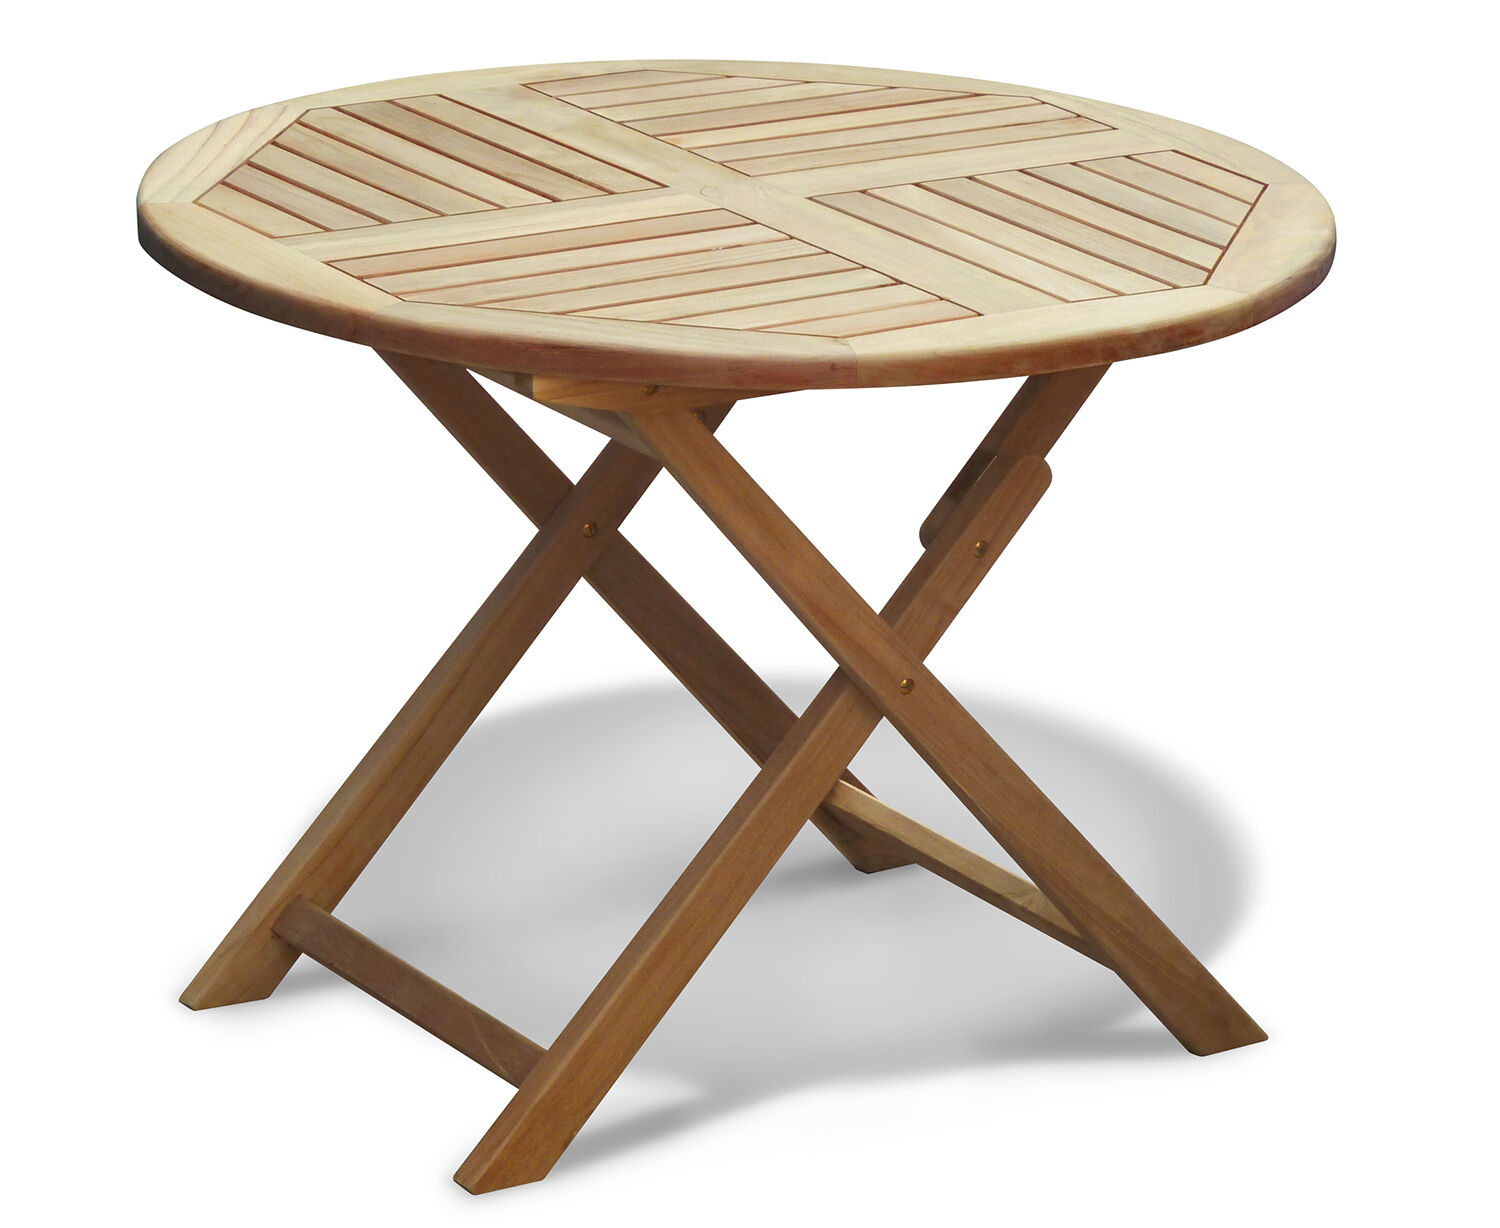 Details about Lymington Teak Round Garden Table 8.8m-8.8m - Outdoor Patio  Wooden Folding Table